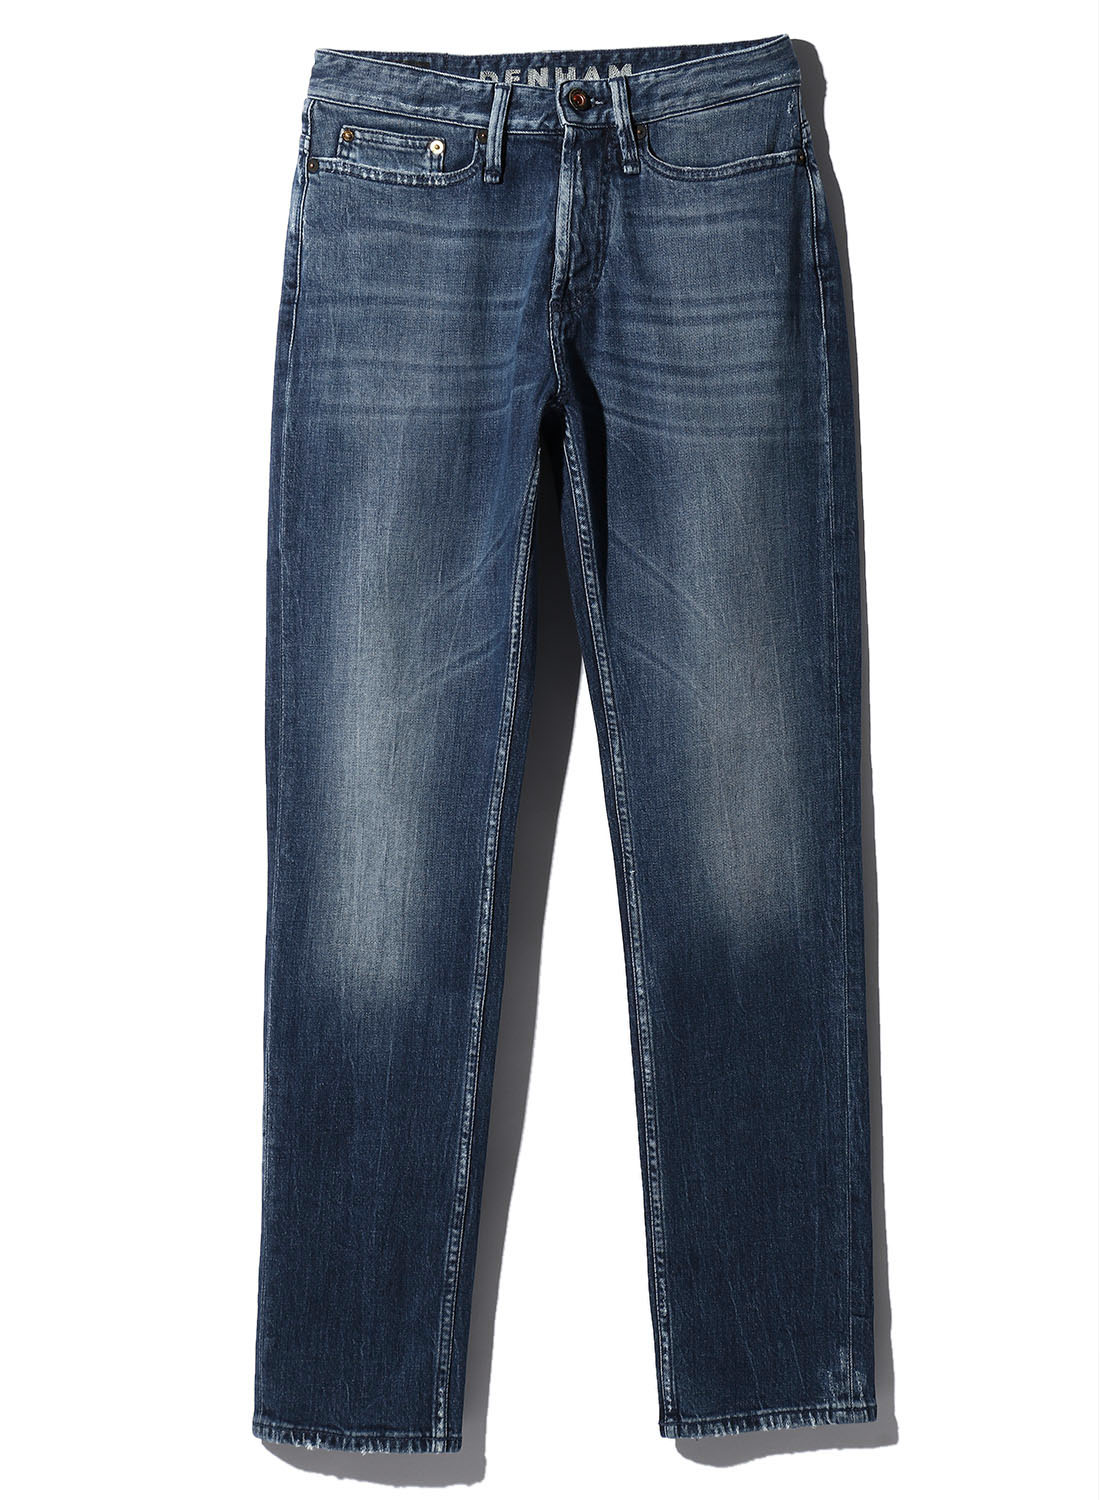 【CANDIANI DENIM】 FORGE GRPAB